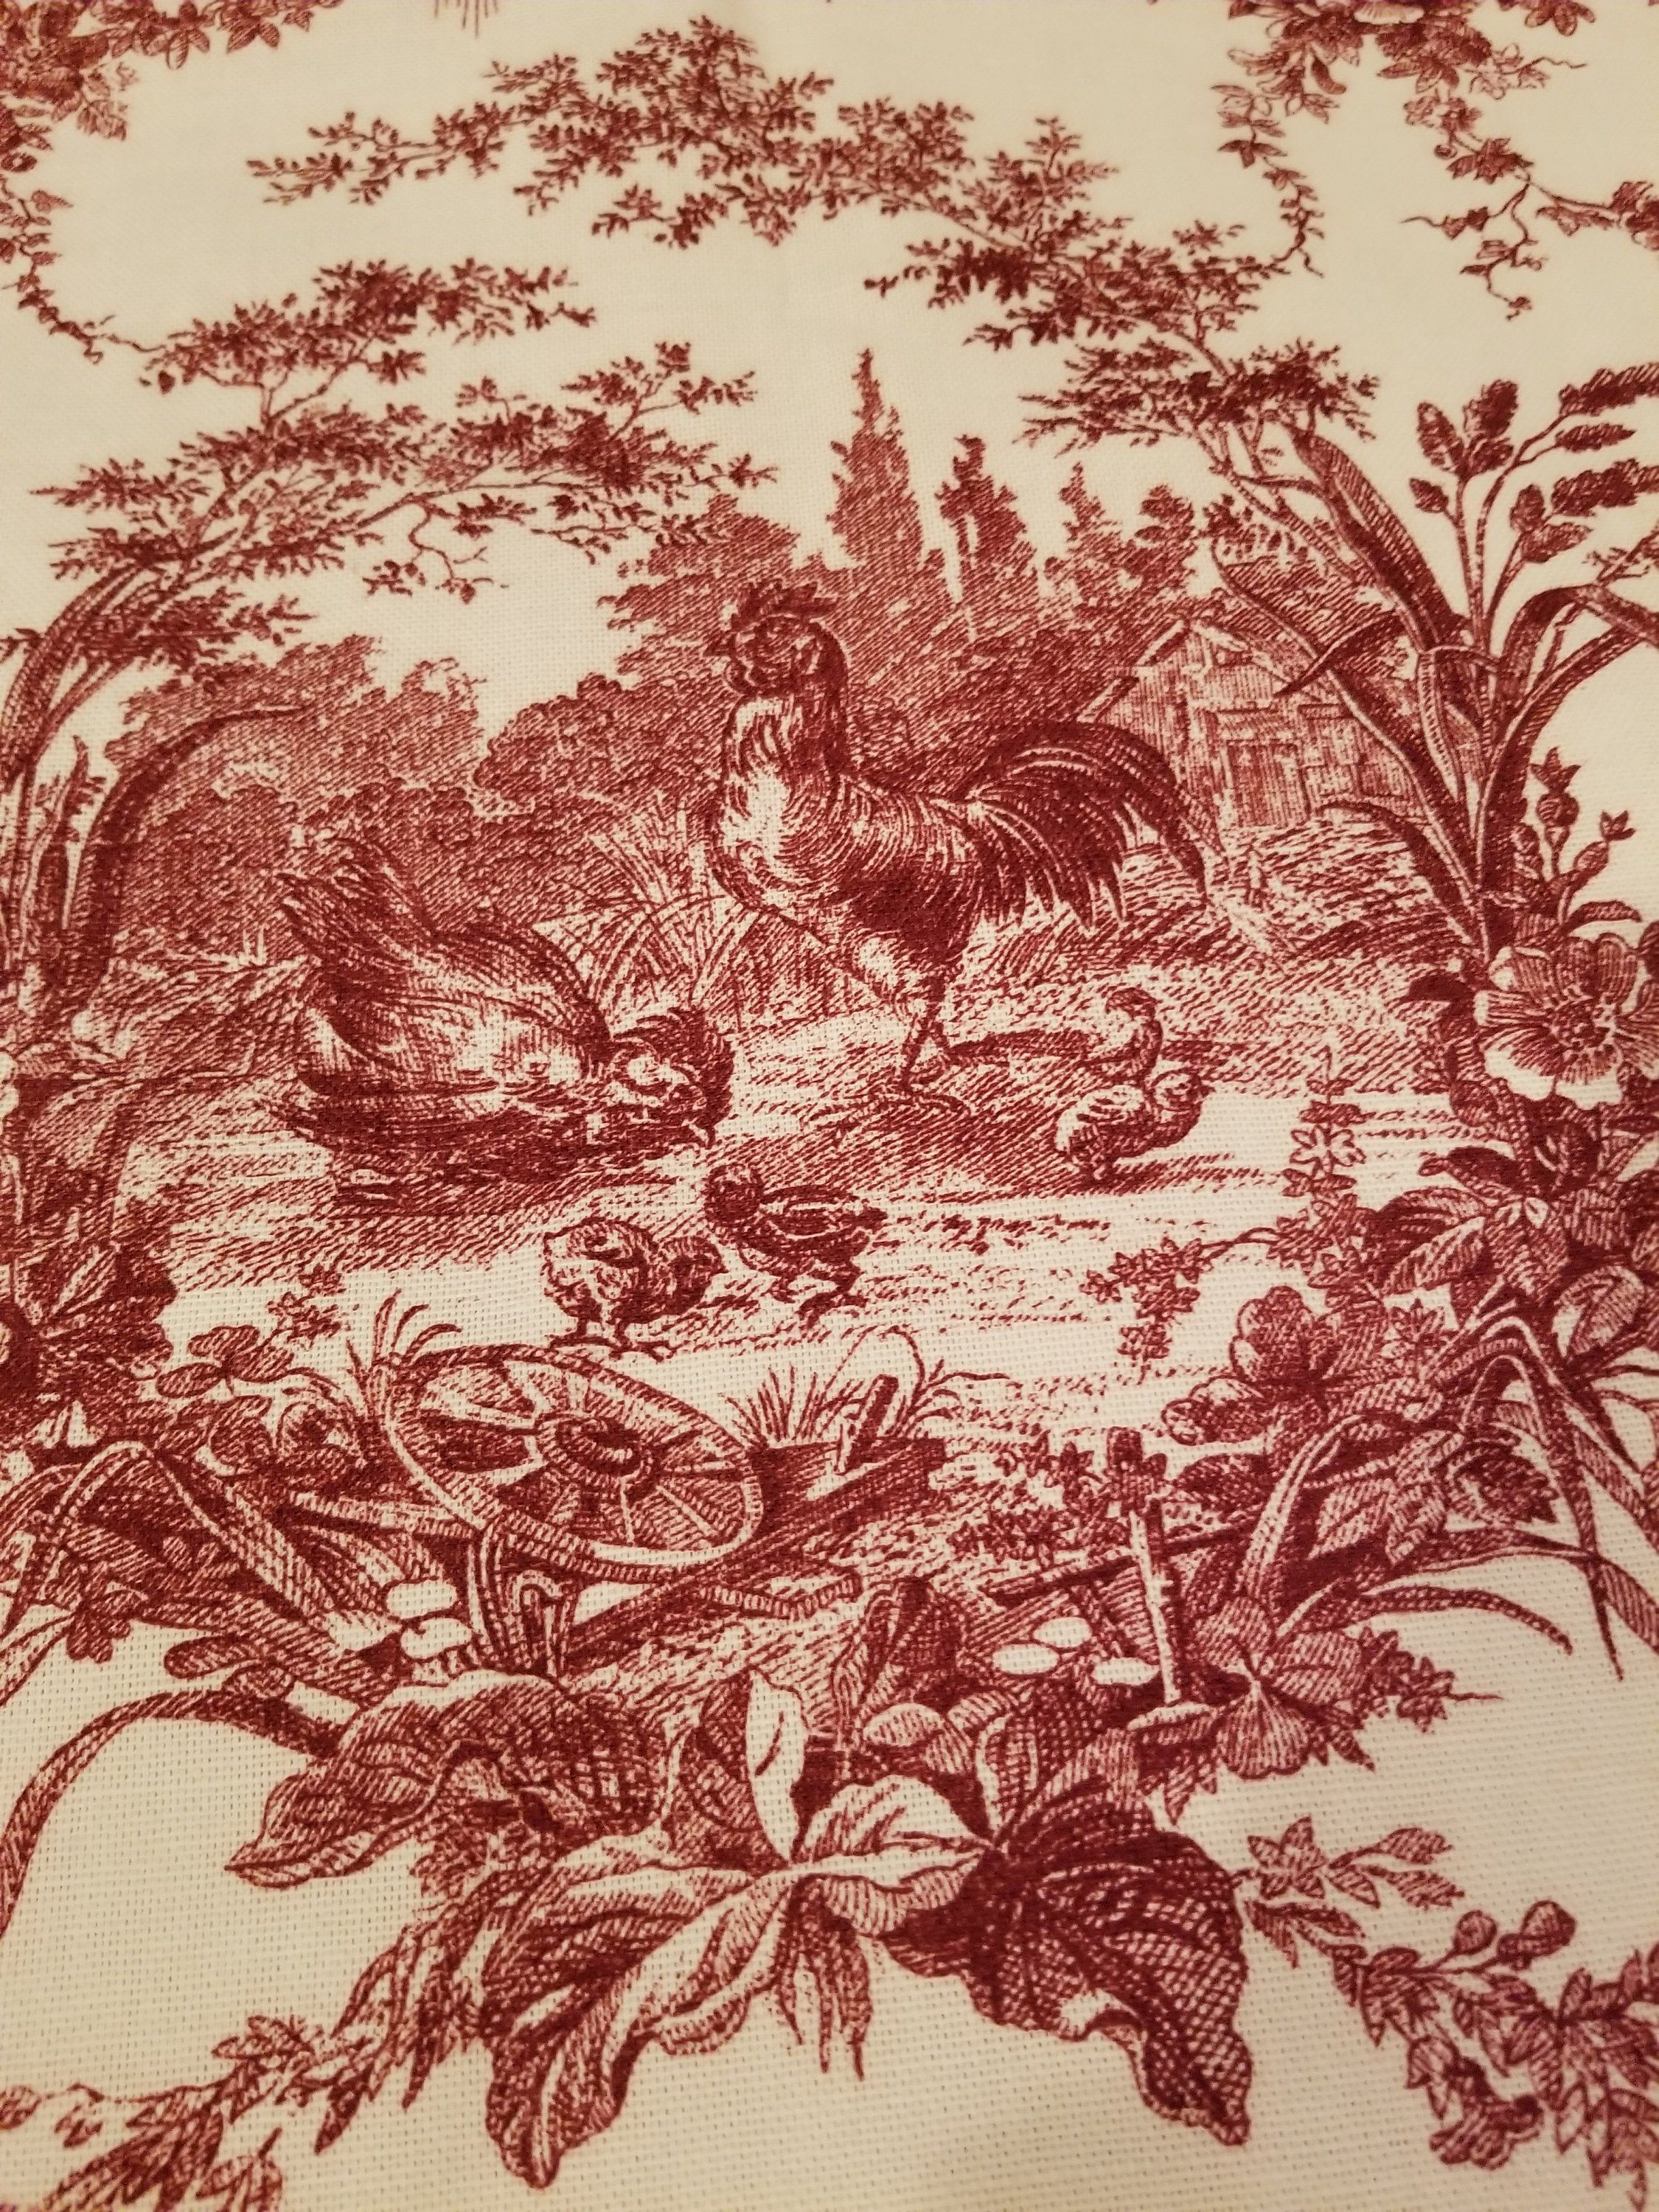 Waverly Rooster Fabric La Petite Ferme Tan Cream And Red Toile Rooster Fabric 4 5 Yards Decorator Fabric By Veryvintagesouthe Fabric Decor Toile Fabric Waverly